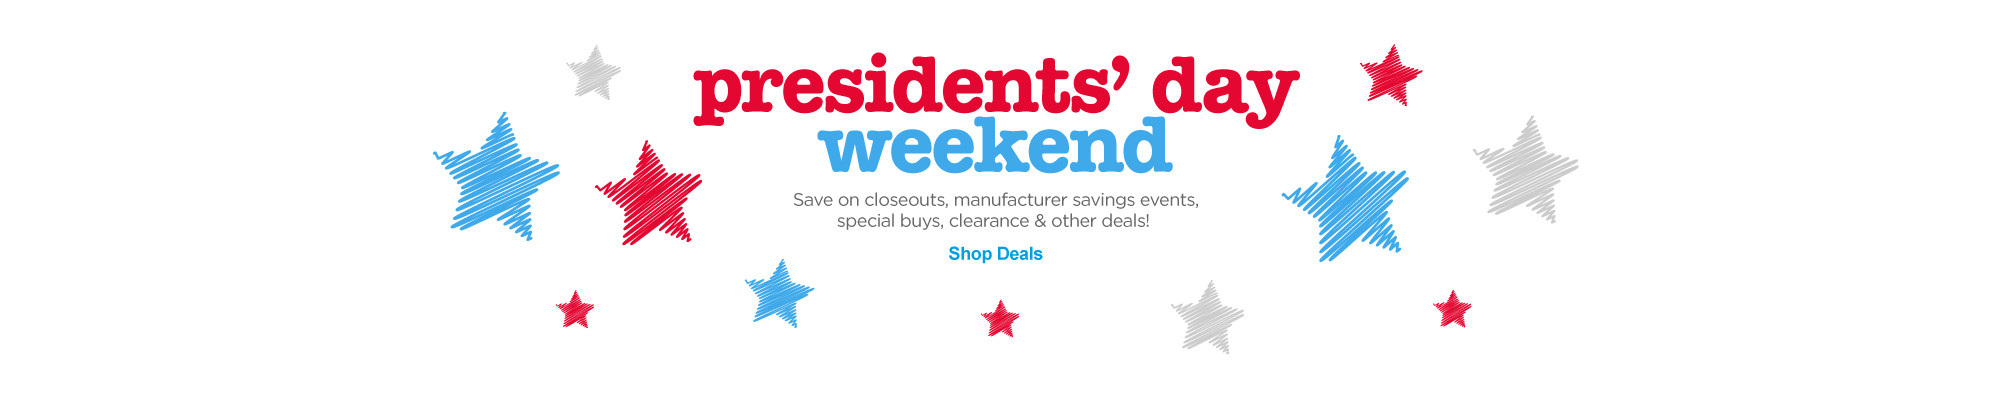 Presidents' Day Weekend - Shop Deals